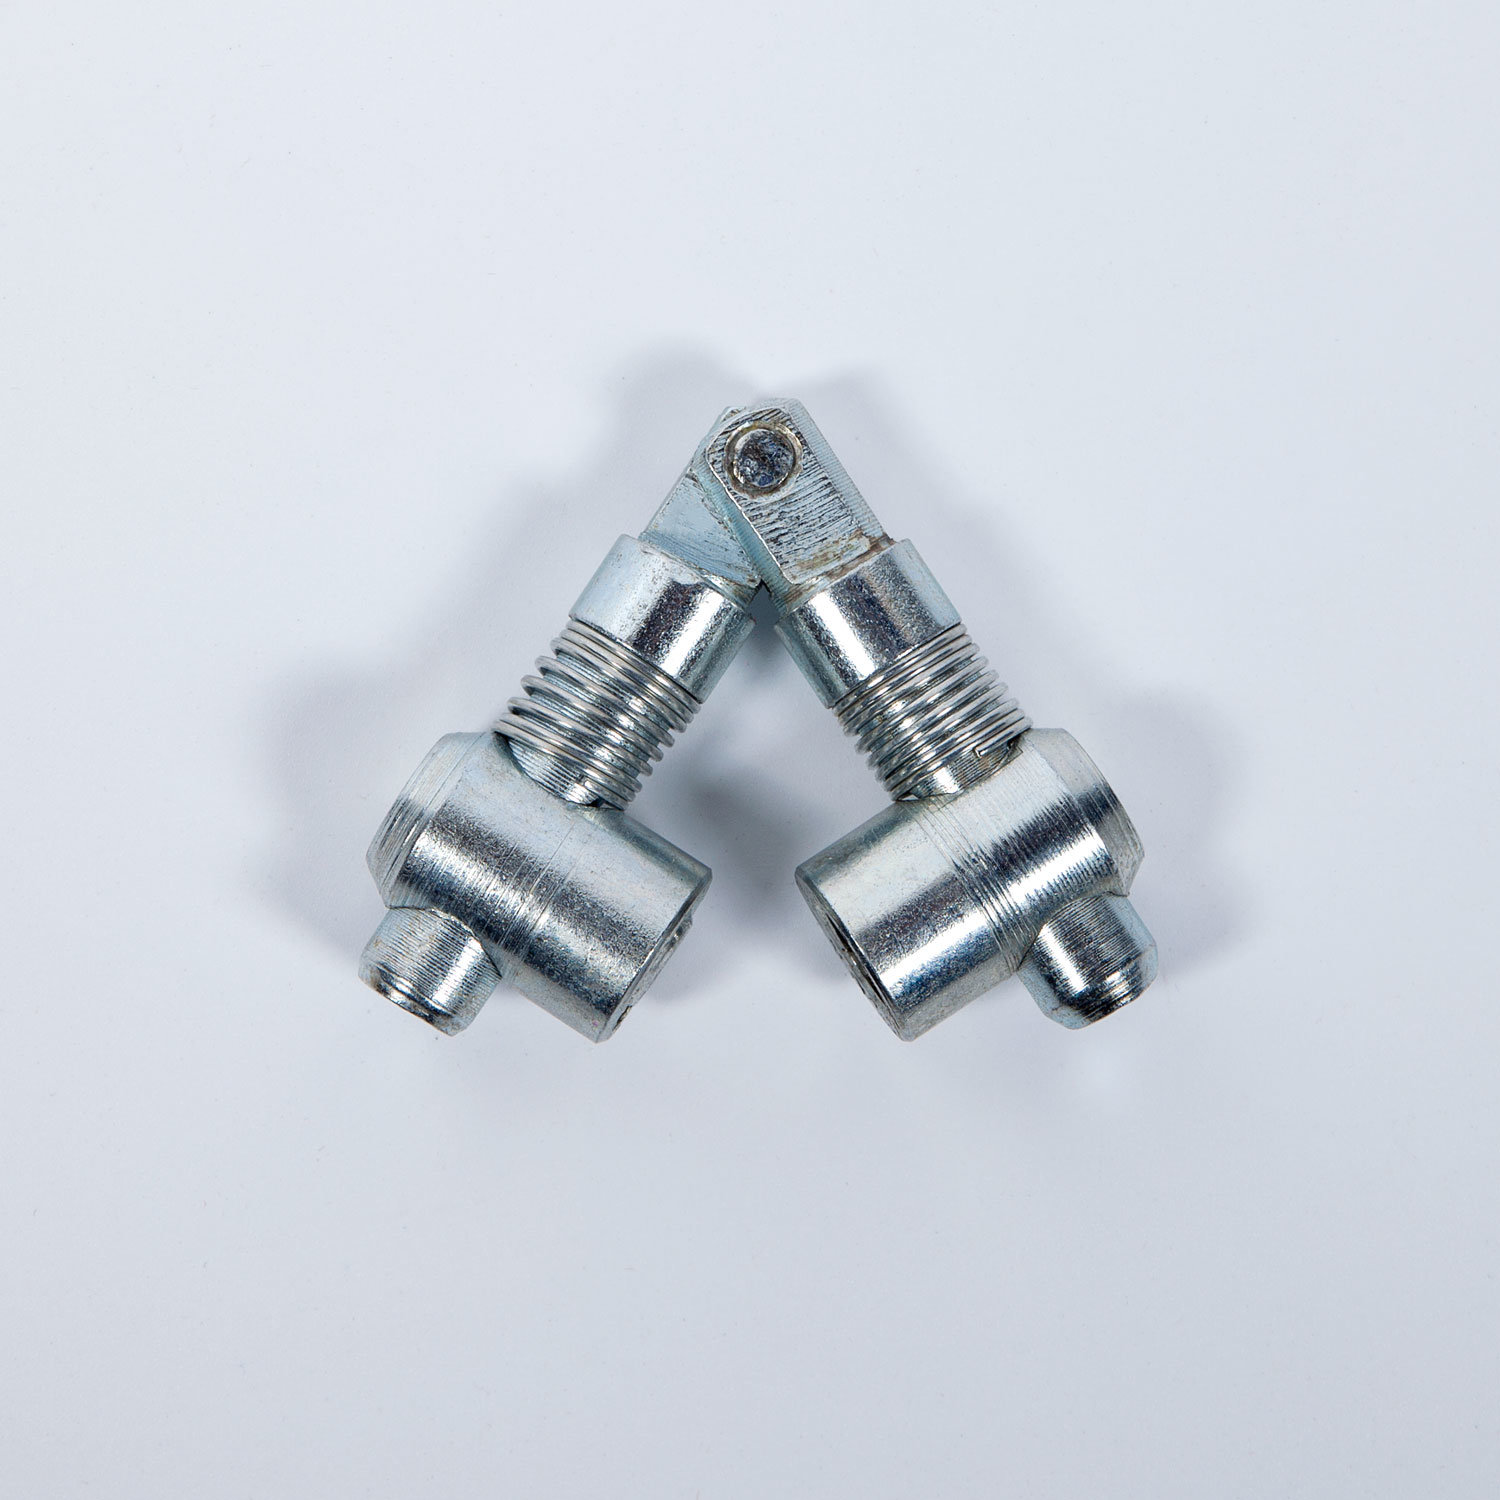 Achored Diagonal Connecting Pin